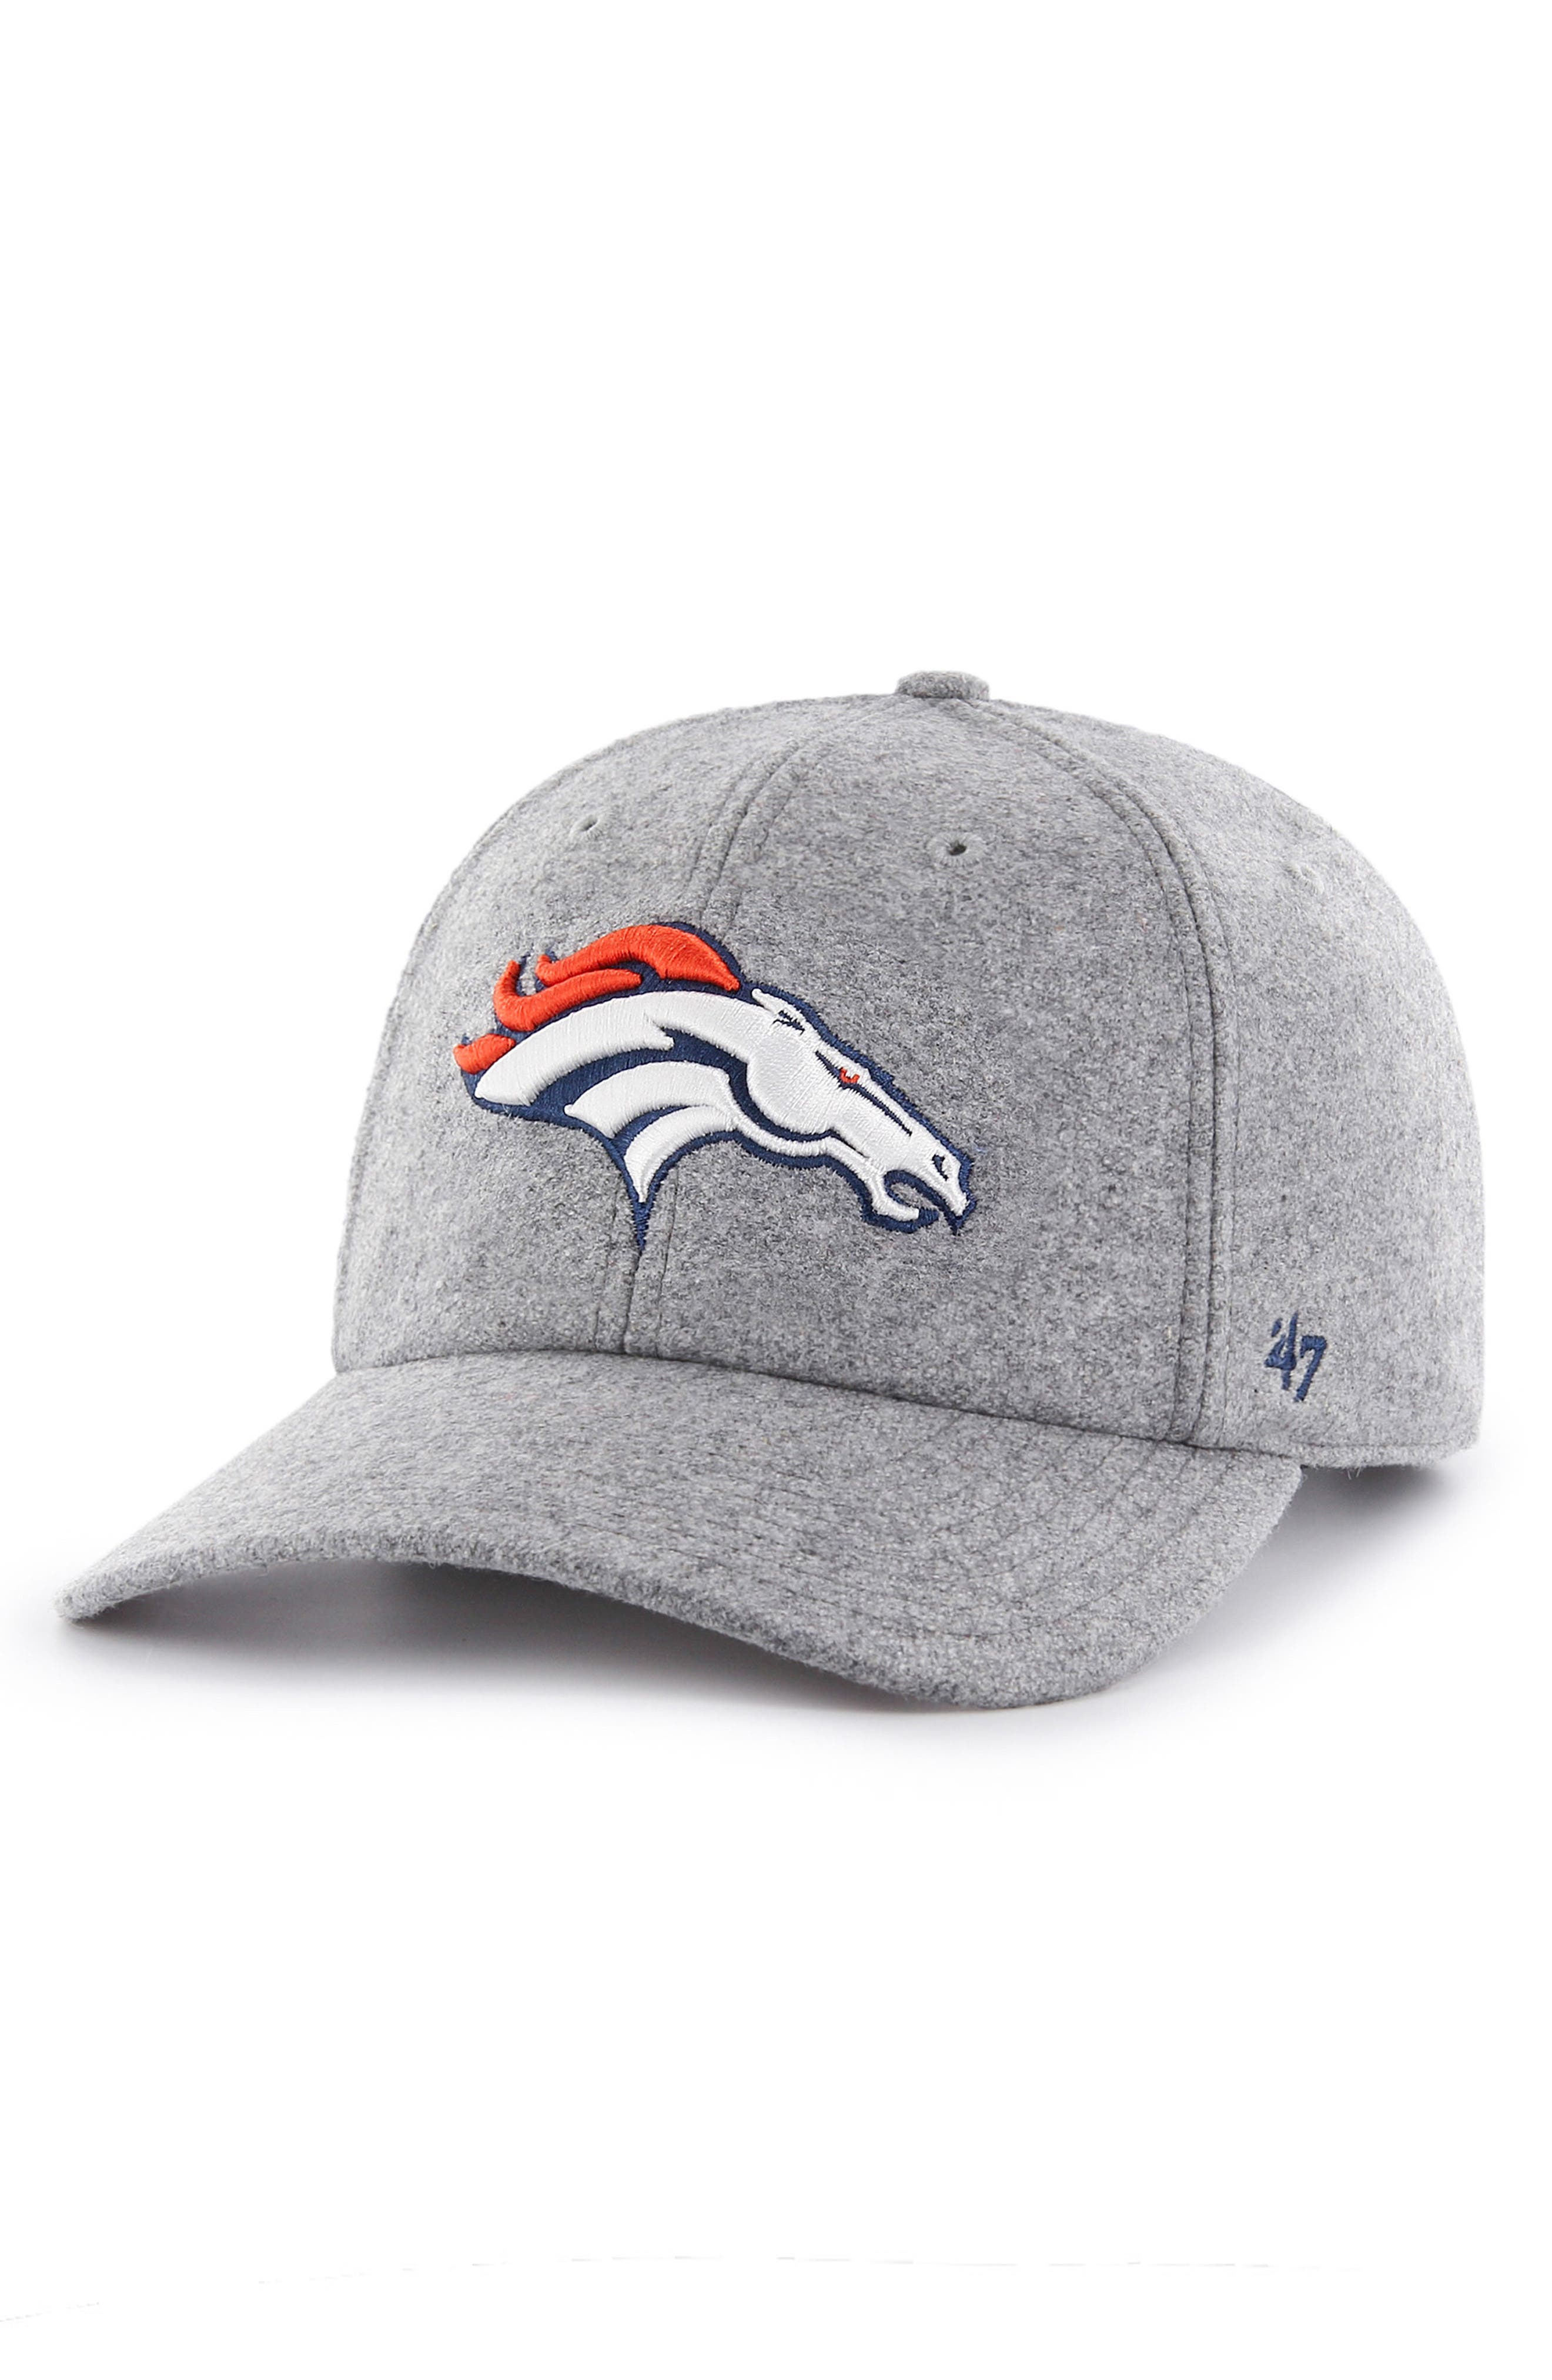 Alternate Image 1 Selected - 47 Brand NFL Clean-Up Ball Cap